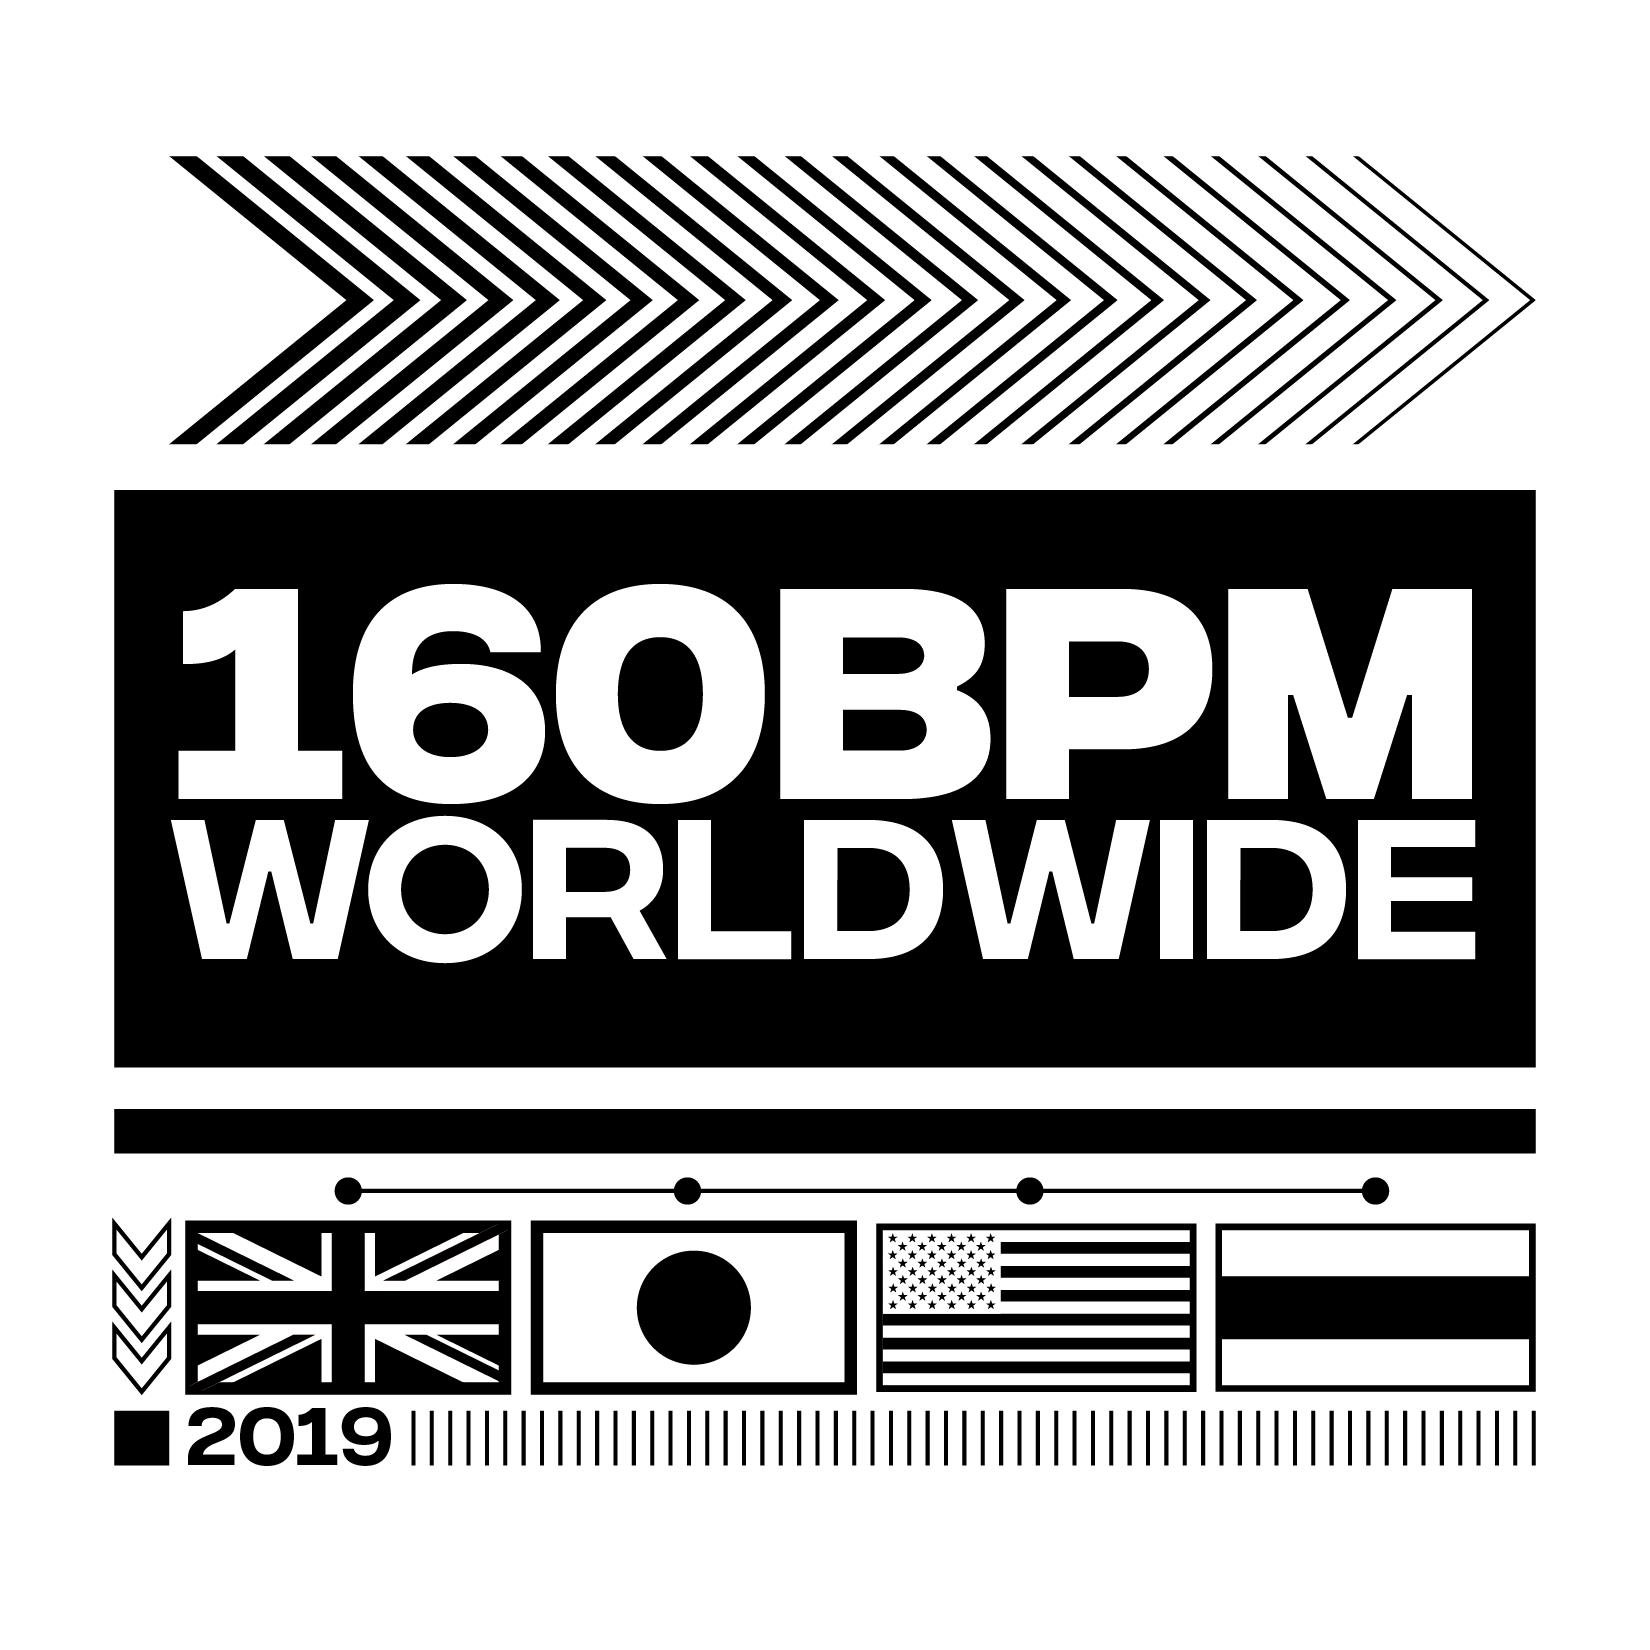 Black Marbe Collective - 160BPM Worldwide Shirt-01.png